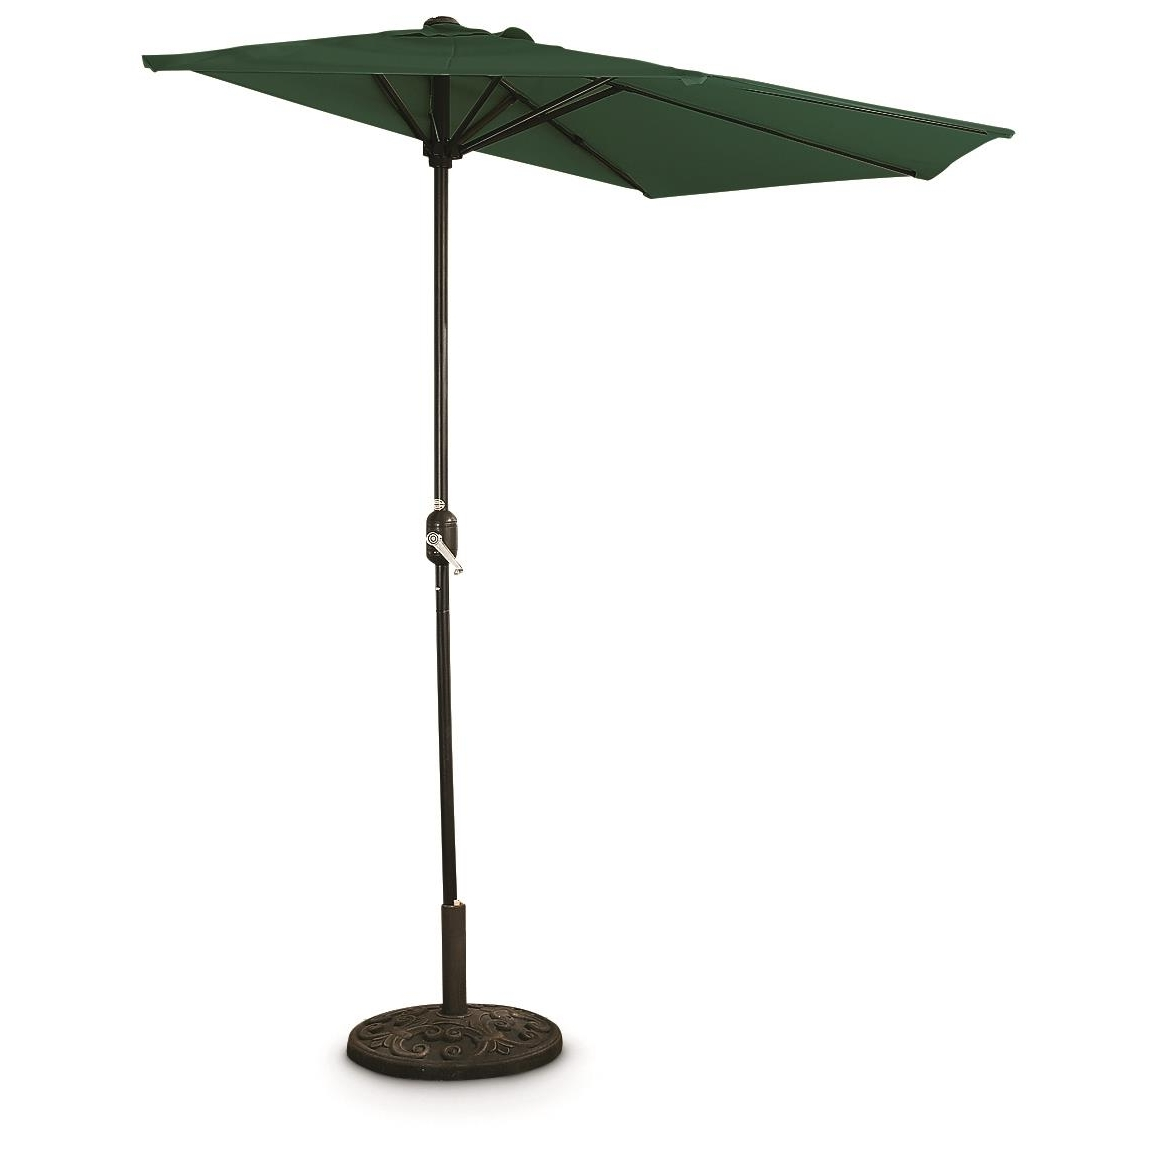 Newest Green Patio Umbrellas Within Castlecreek 8' Half Round Patio Umbrella – 235556, Patio Umbrellas (View 11 of 20)